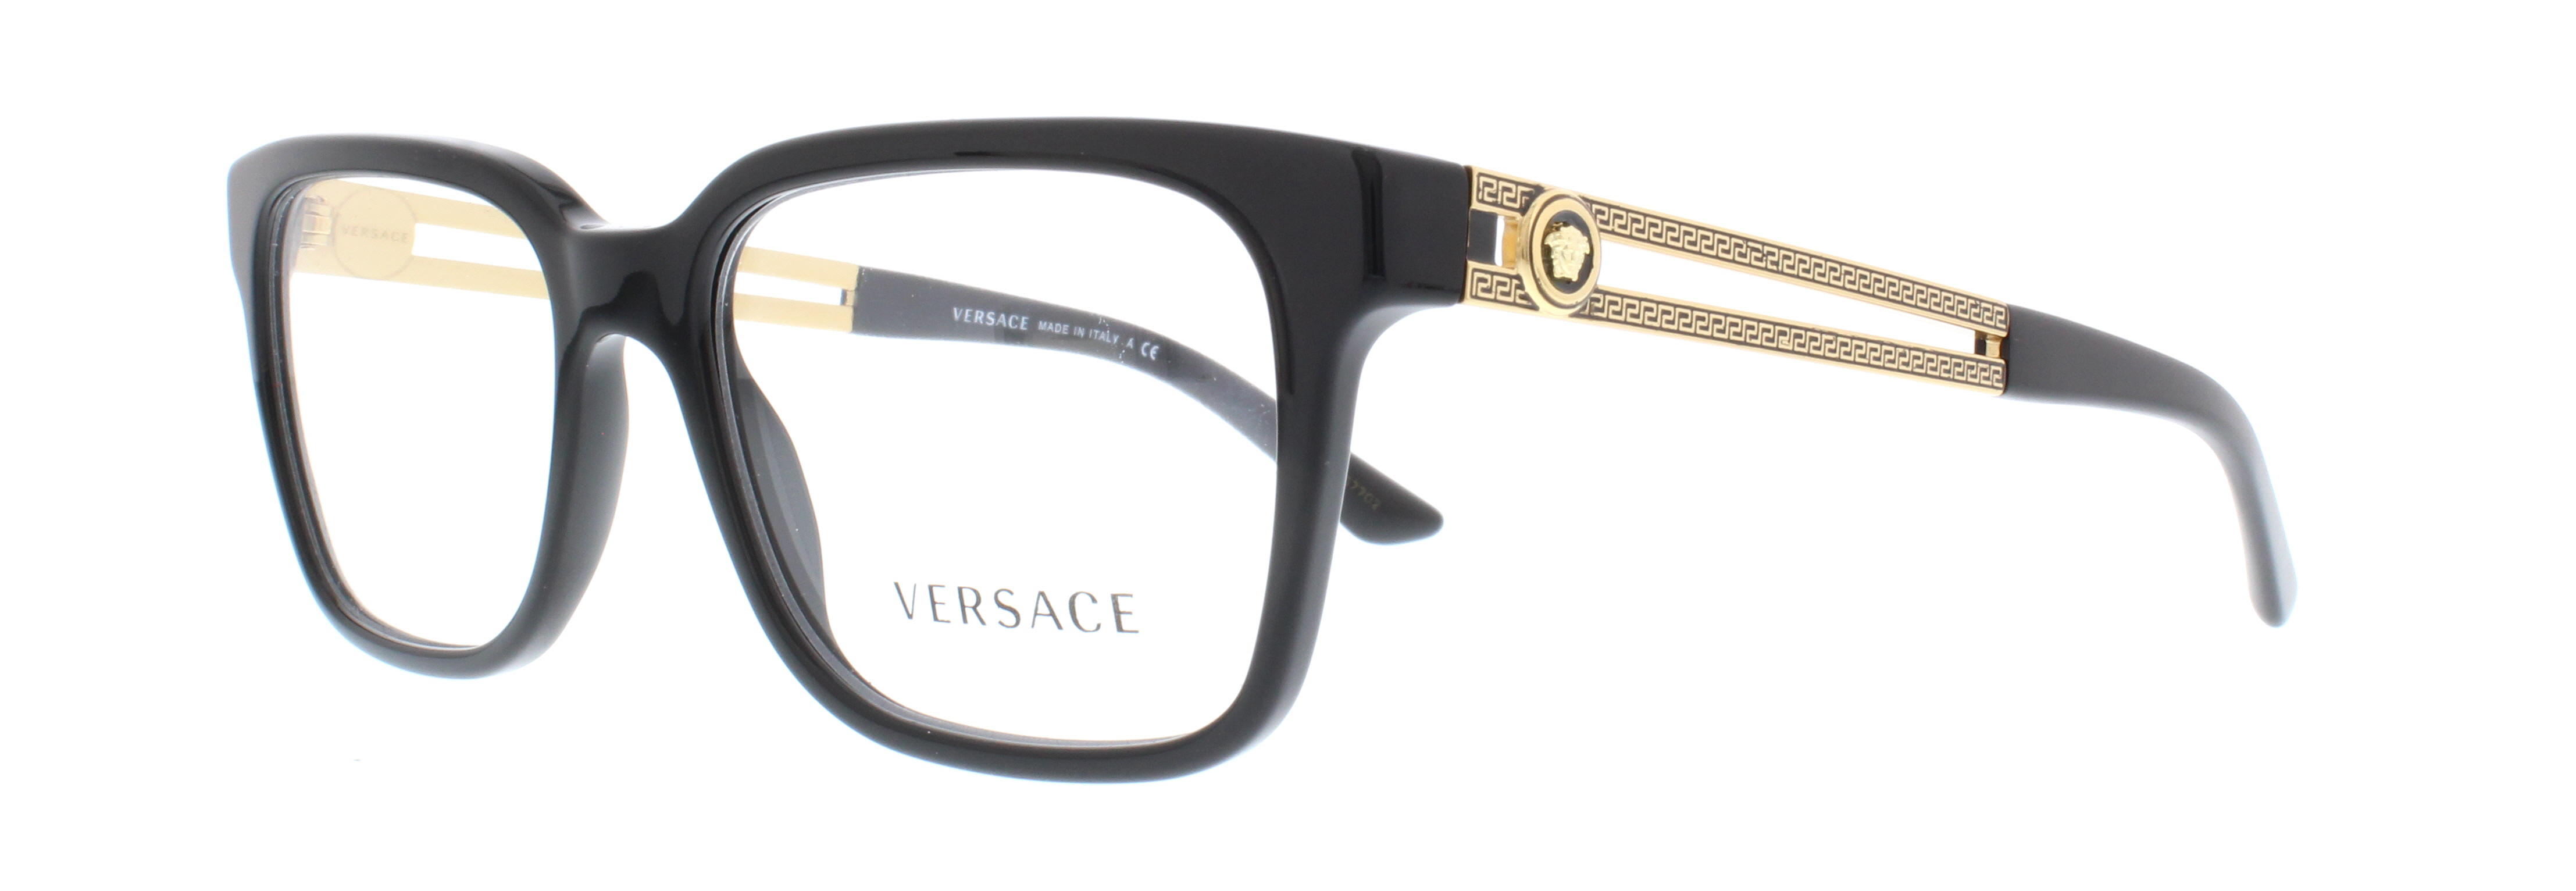 2e20c8eb019 Versace Eyeglasses Frames For Men